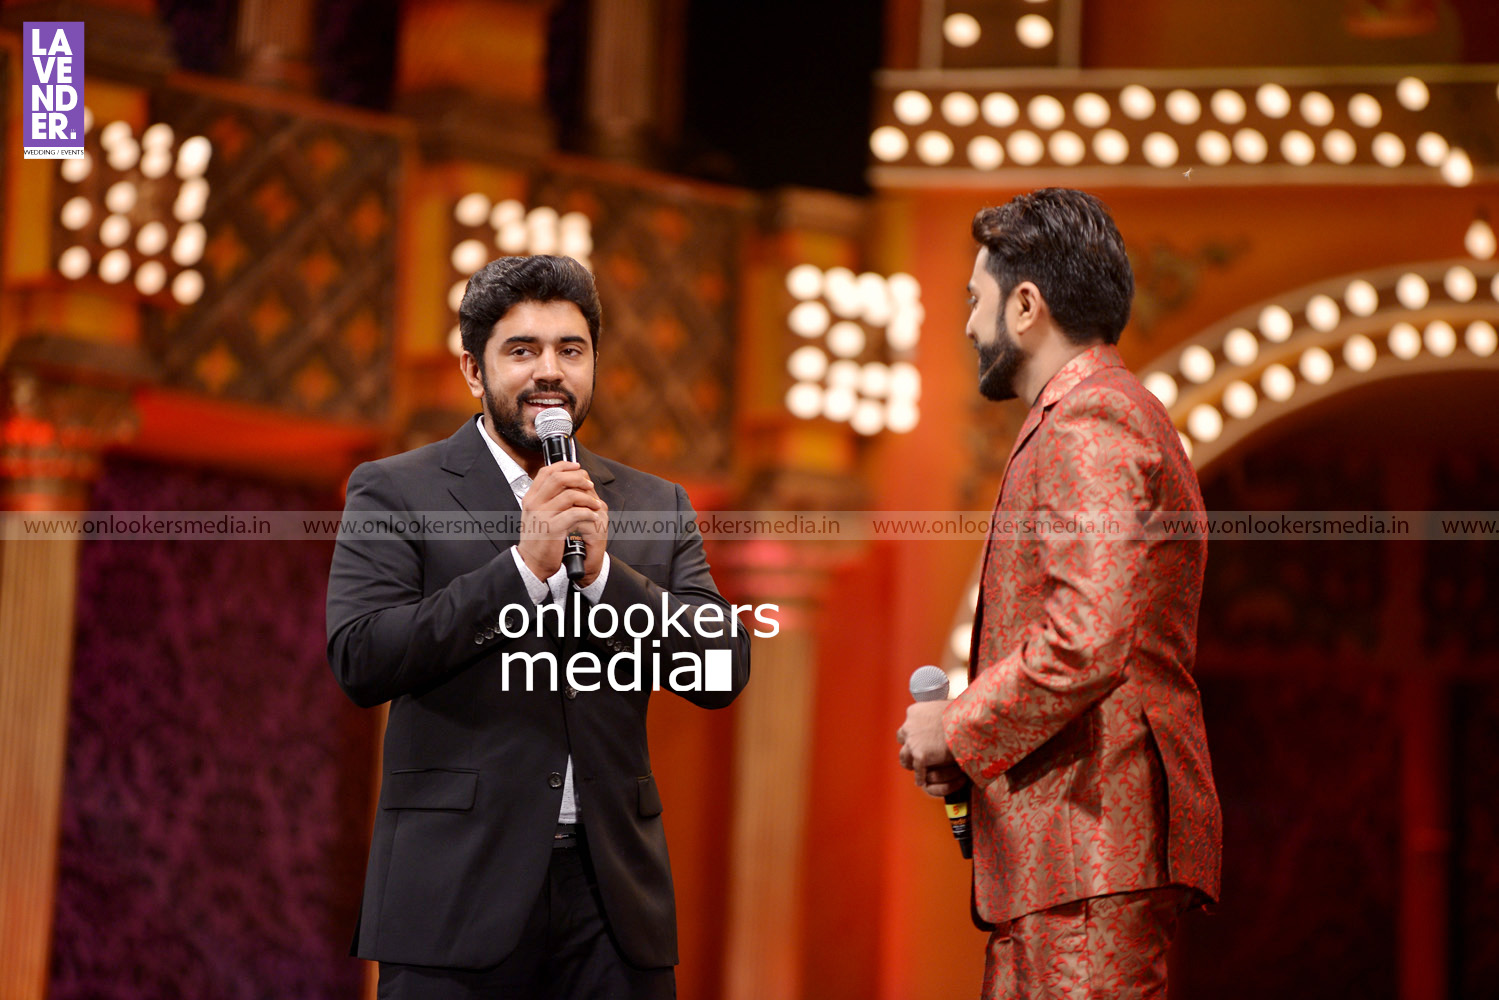 http://onlookersmedia.in/wp-content/uploads/2016/02/Nivin-Pauly-at-Asianet-Film-Award-2016-25.jpg